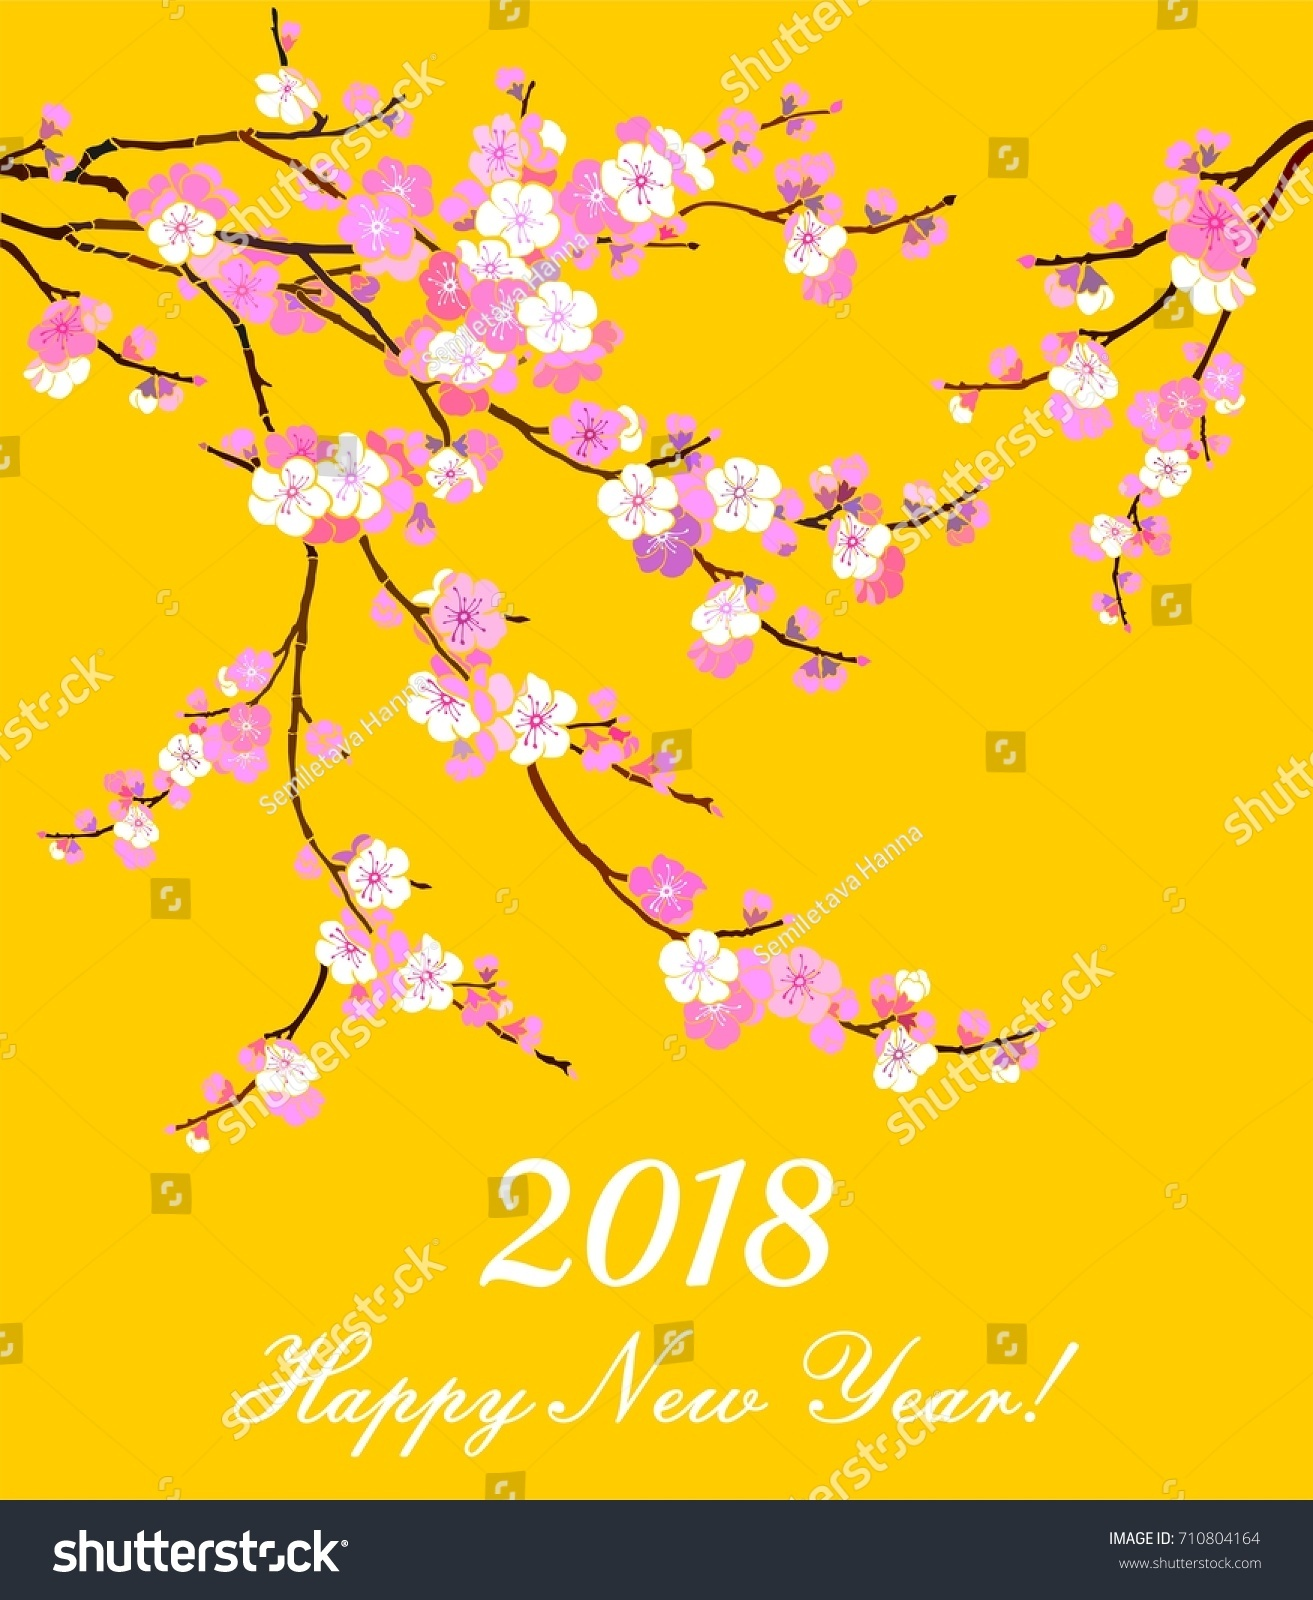 2018 happy new year greeting card celebration background with flowers and place for your text